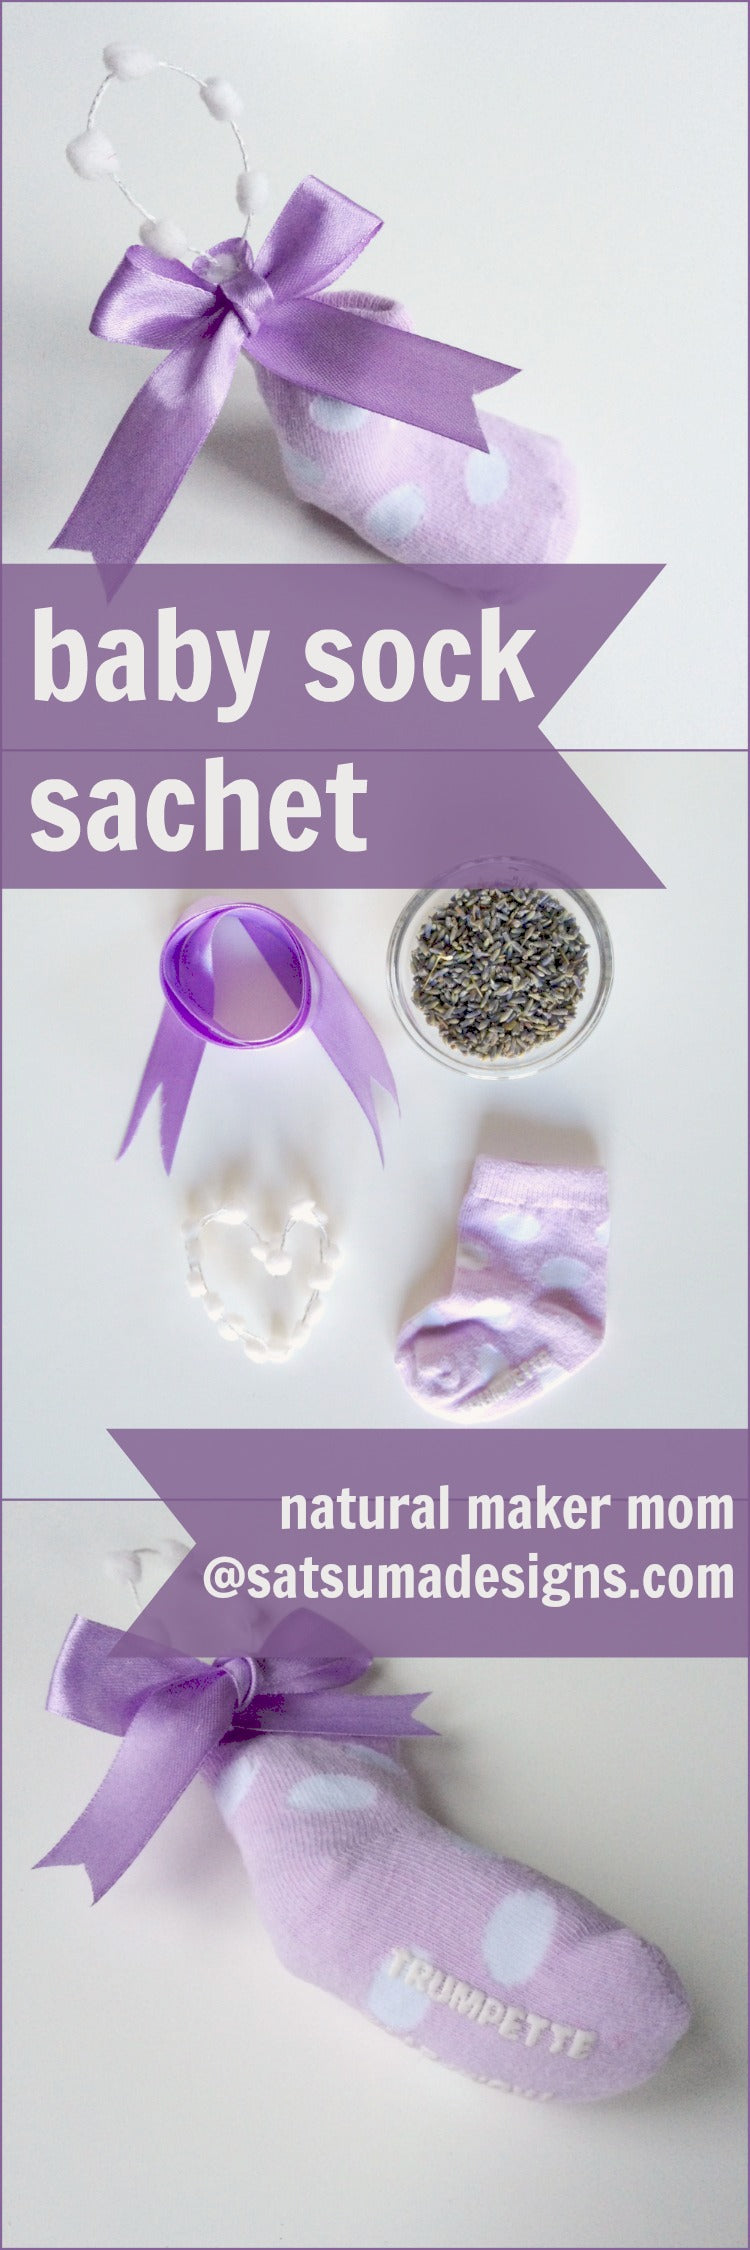 baby sock sachet tutorial